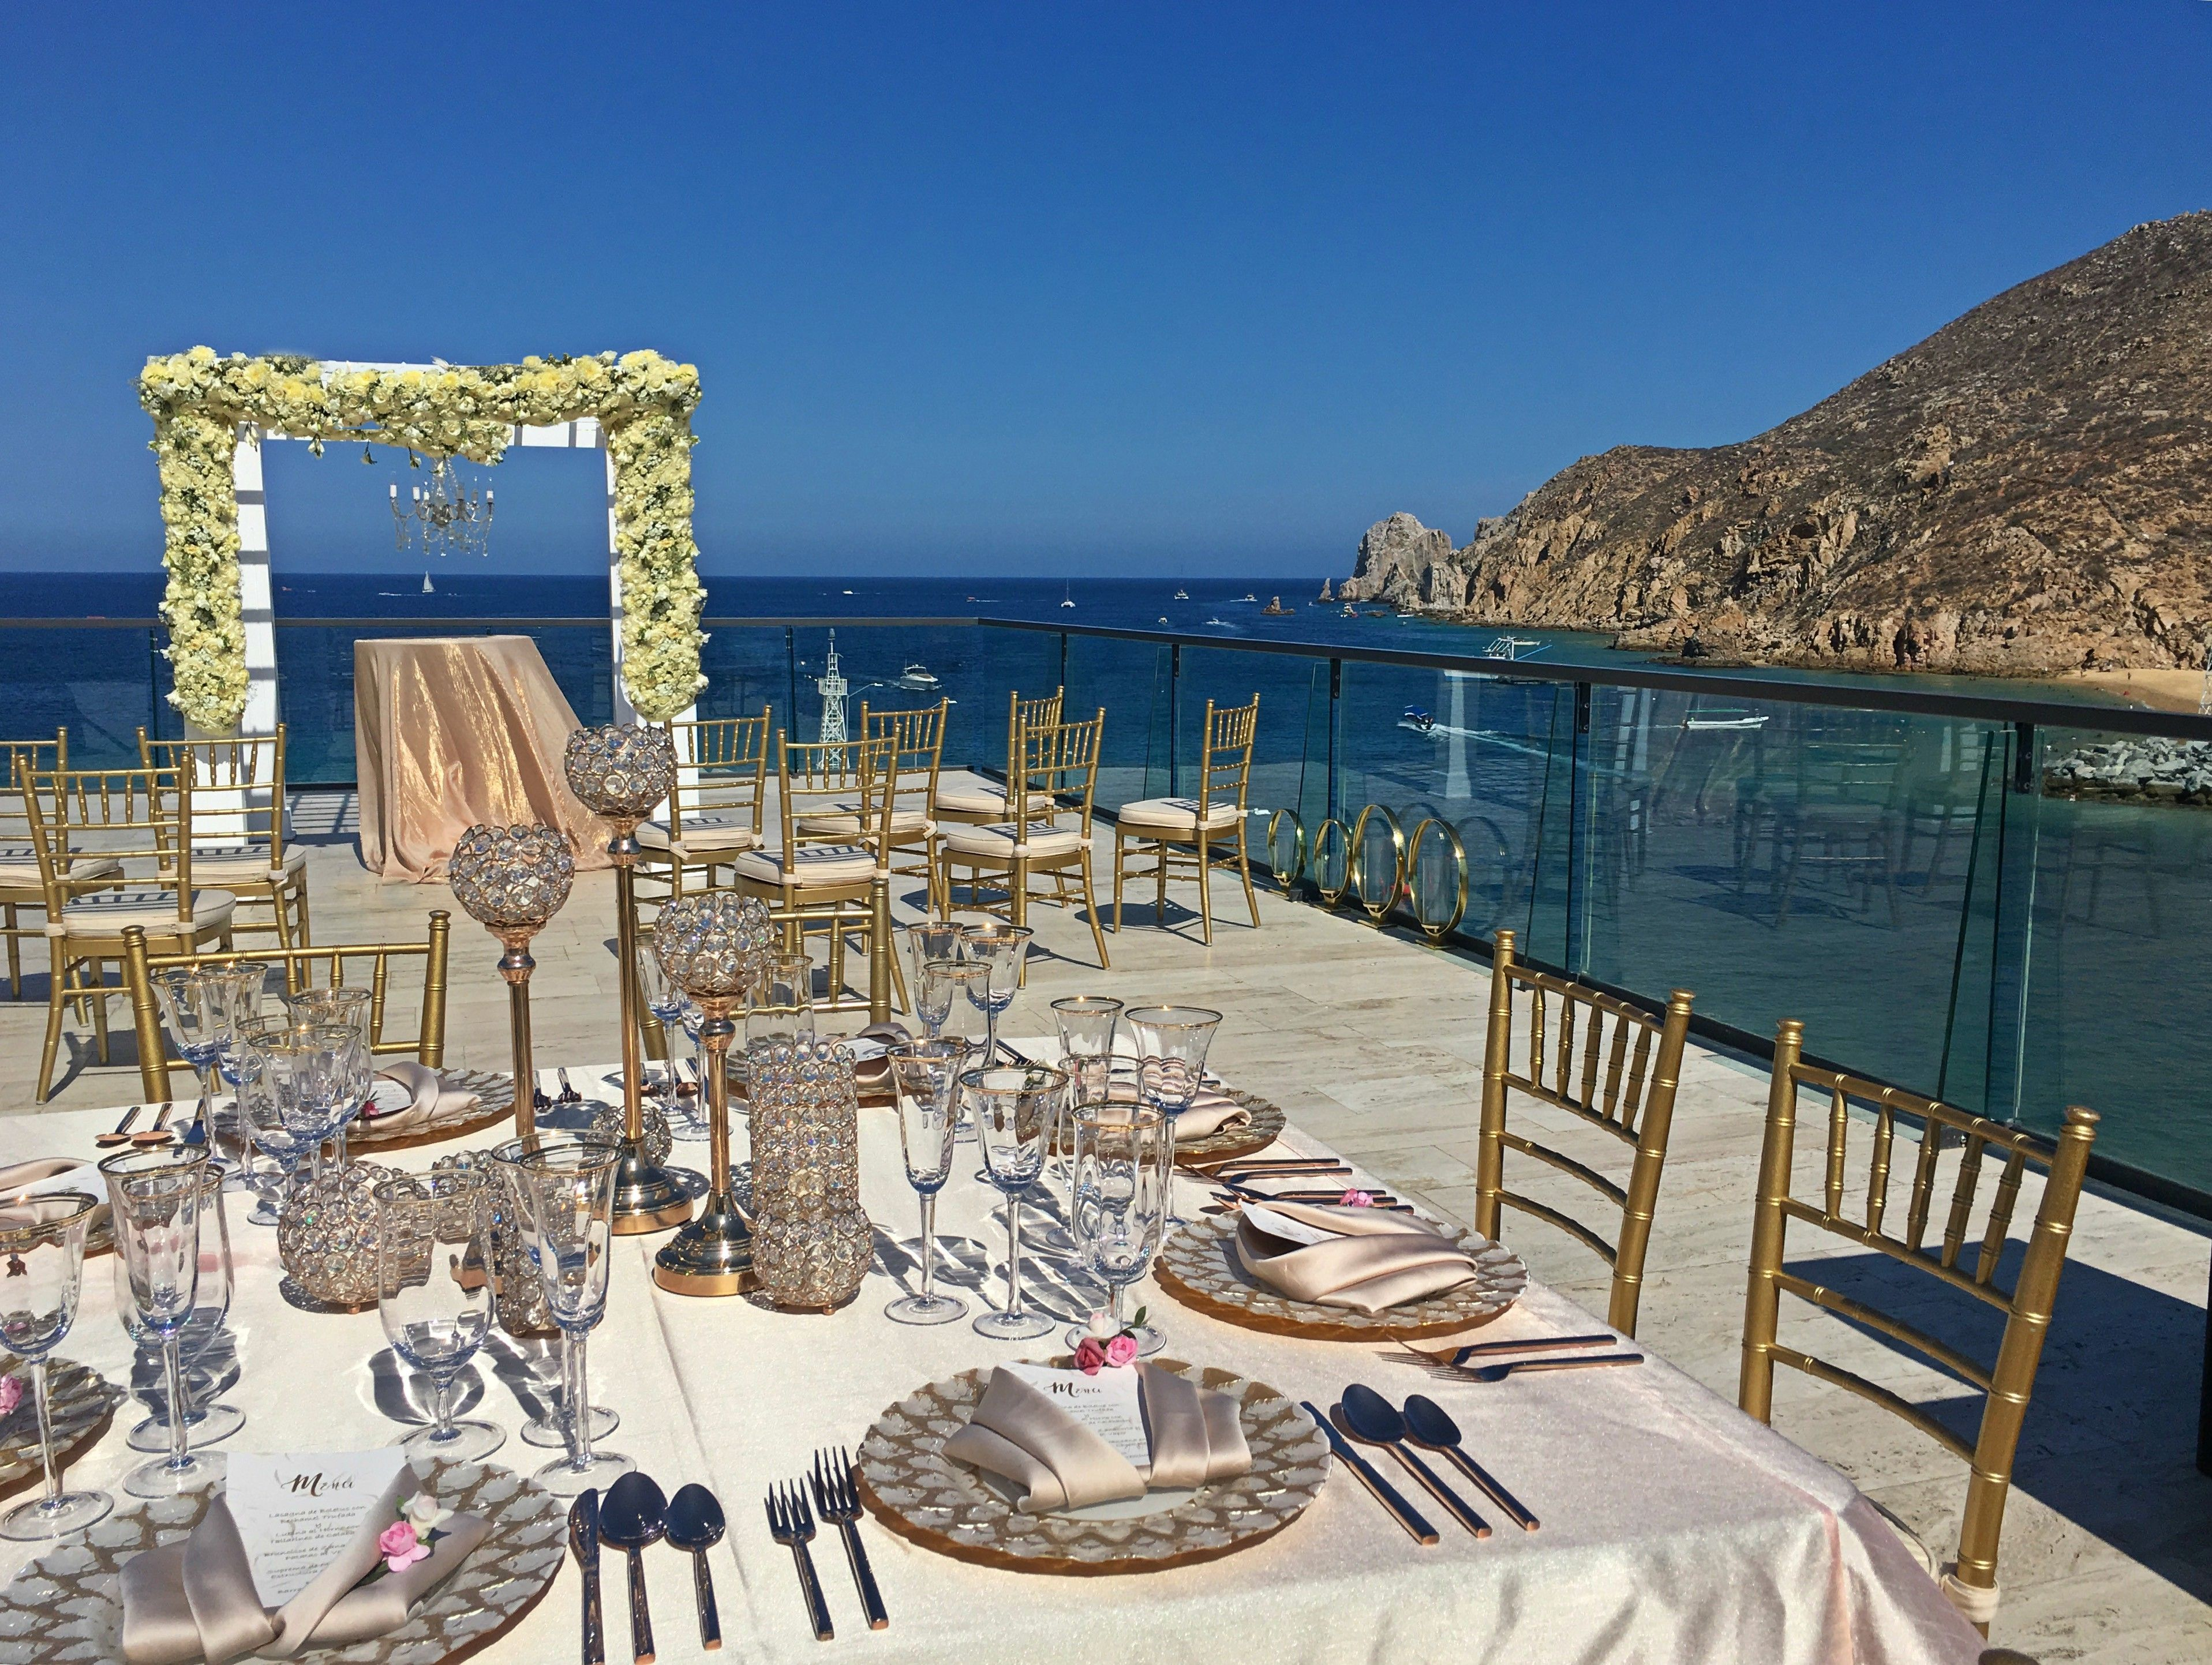 Want a wedding venue with a view? Look no further than